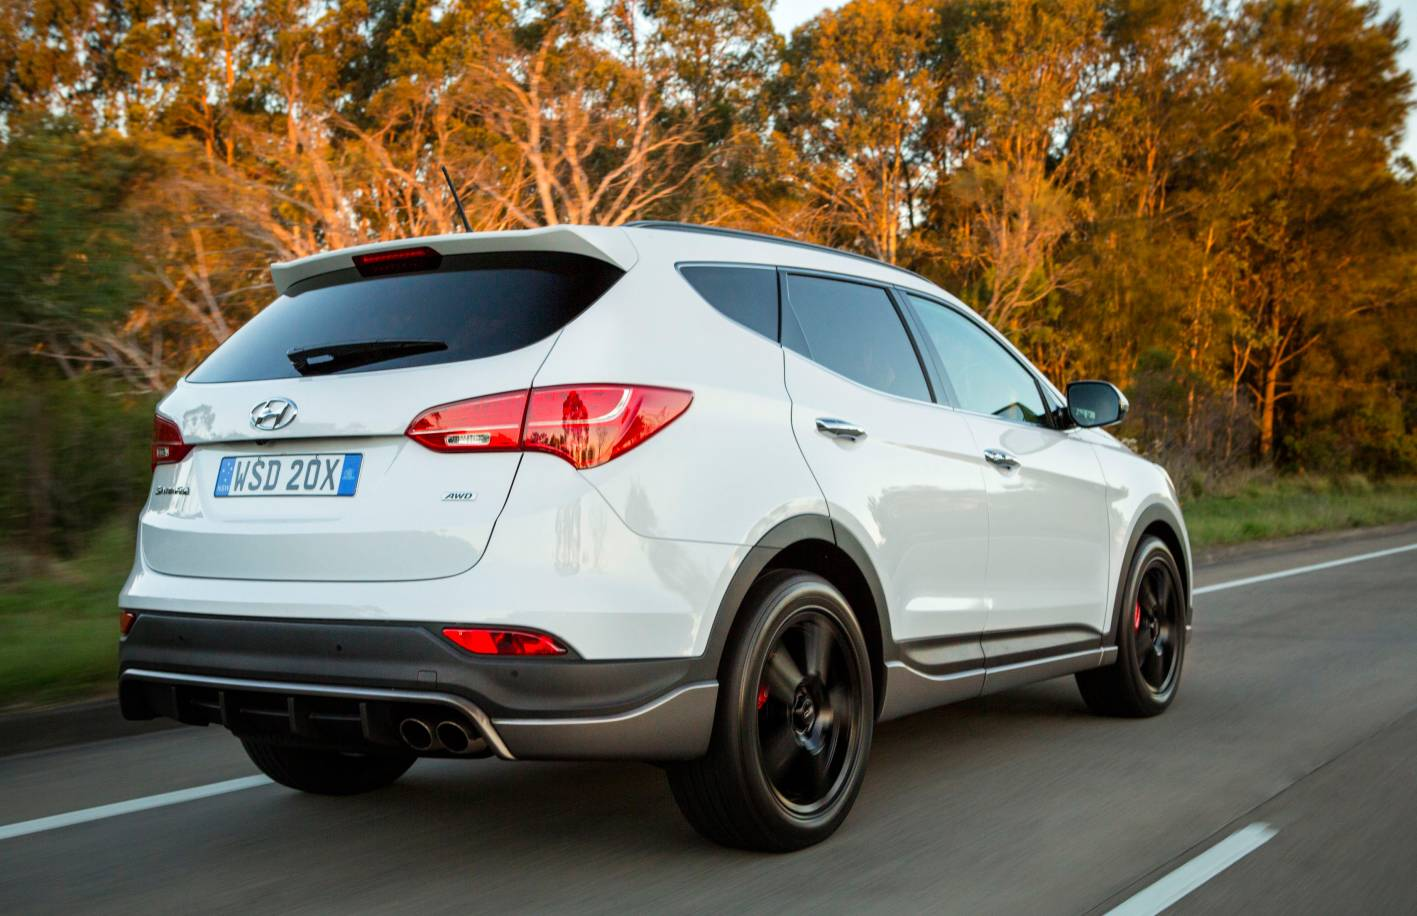 Hyundai Cars News Santa Fe Updated For 2015 With New Sr